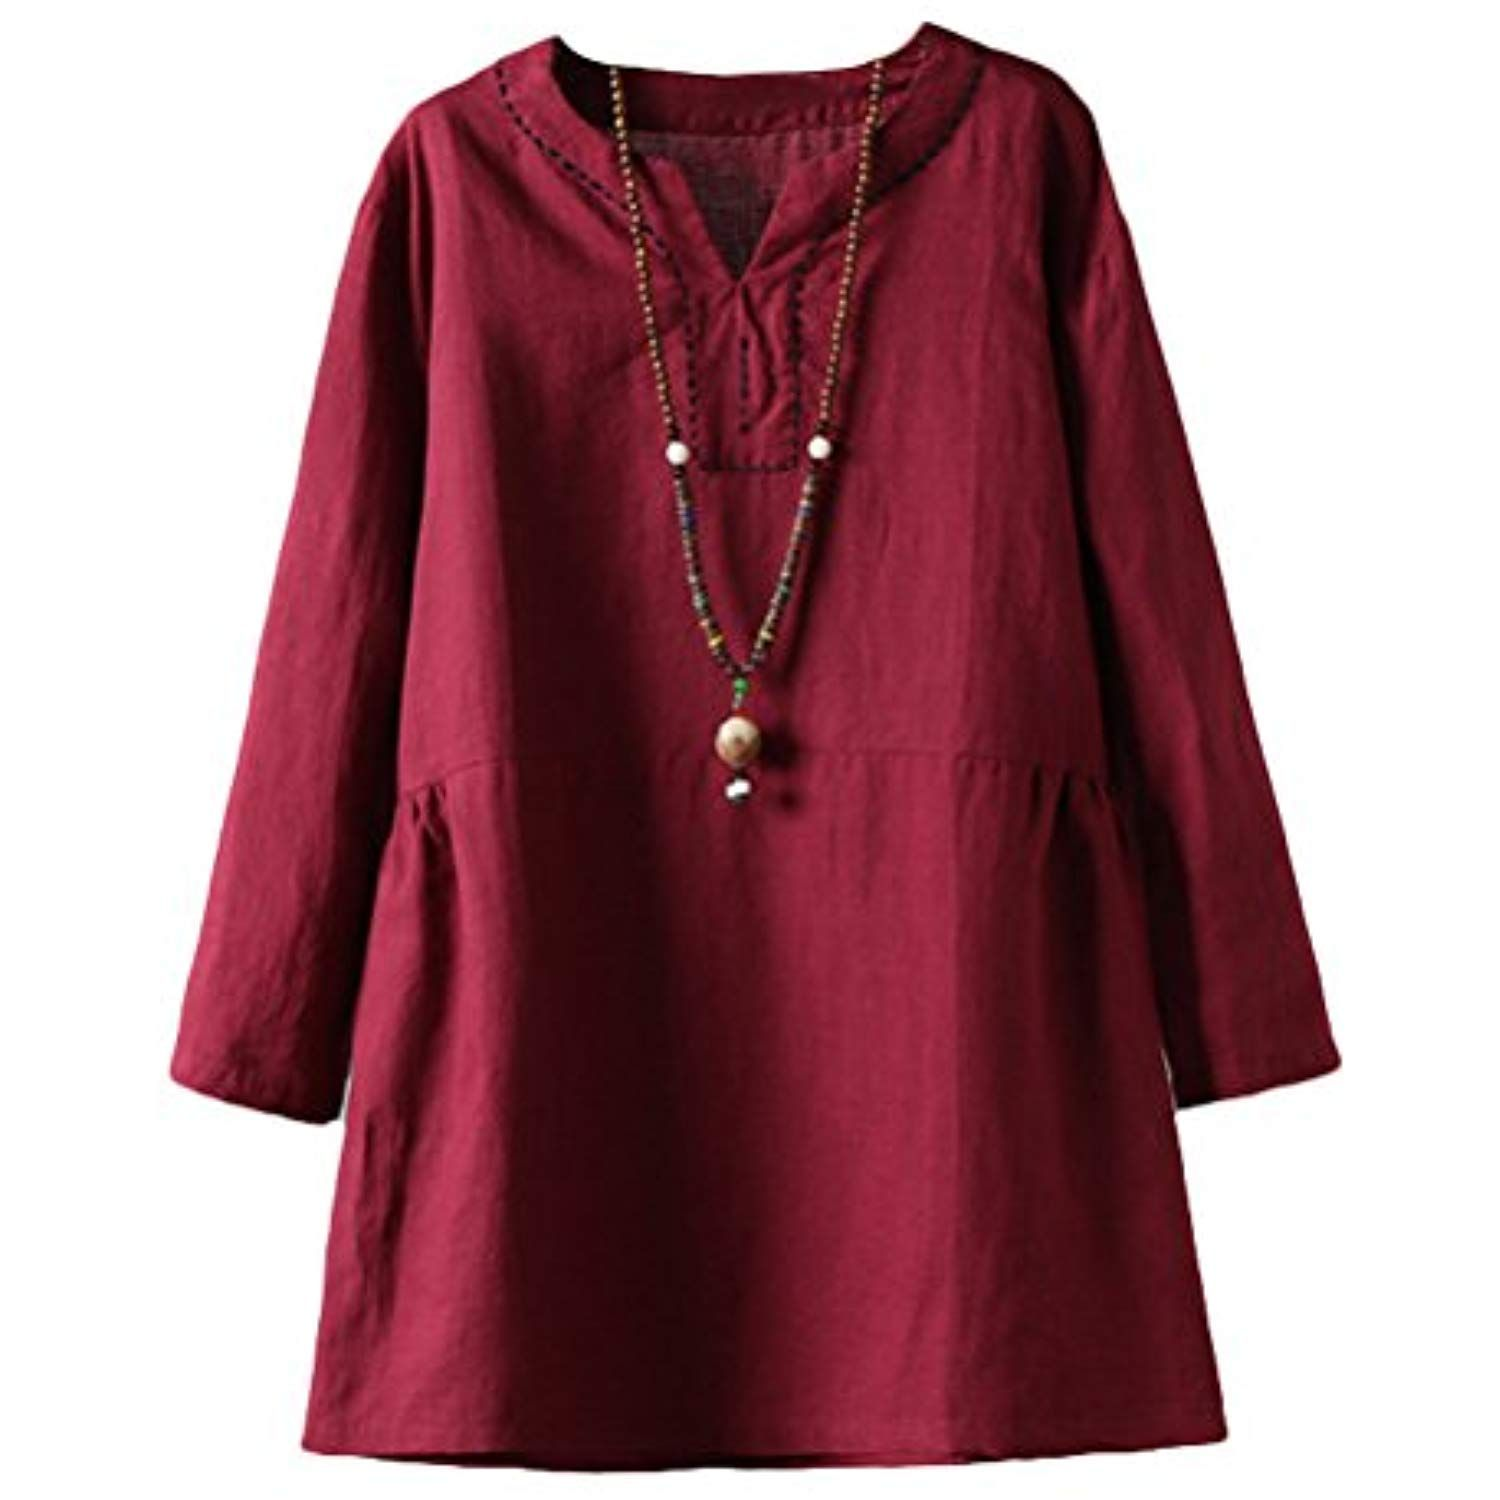 e85640d02d20 Women's Solid Color V Neck Tunic Blouse Top Retro Pullover Dress *** Click  image for more details. (This is an affiliate link)